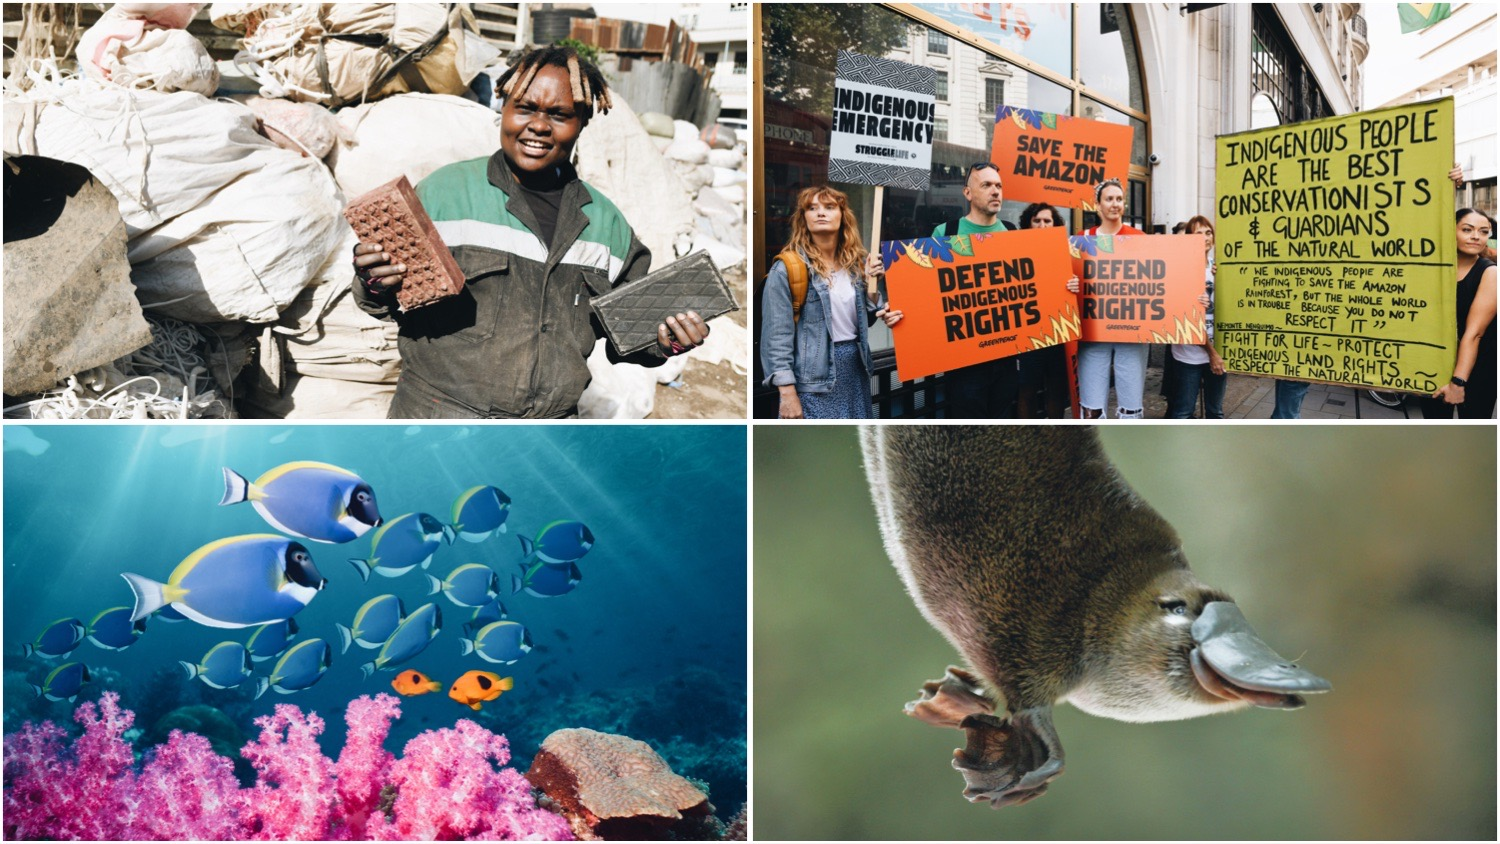 Clockwise from top left. Photos show Nzambi Matee (inventor of innovative plastic pollution solutions), XR protestors demonstrating for Indigenous rights, sealife swimming around coral, and a young platypus.